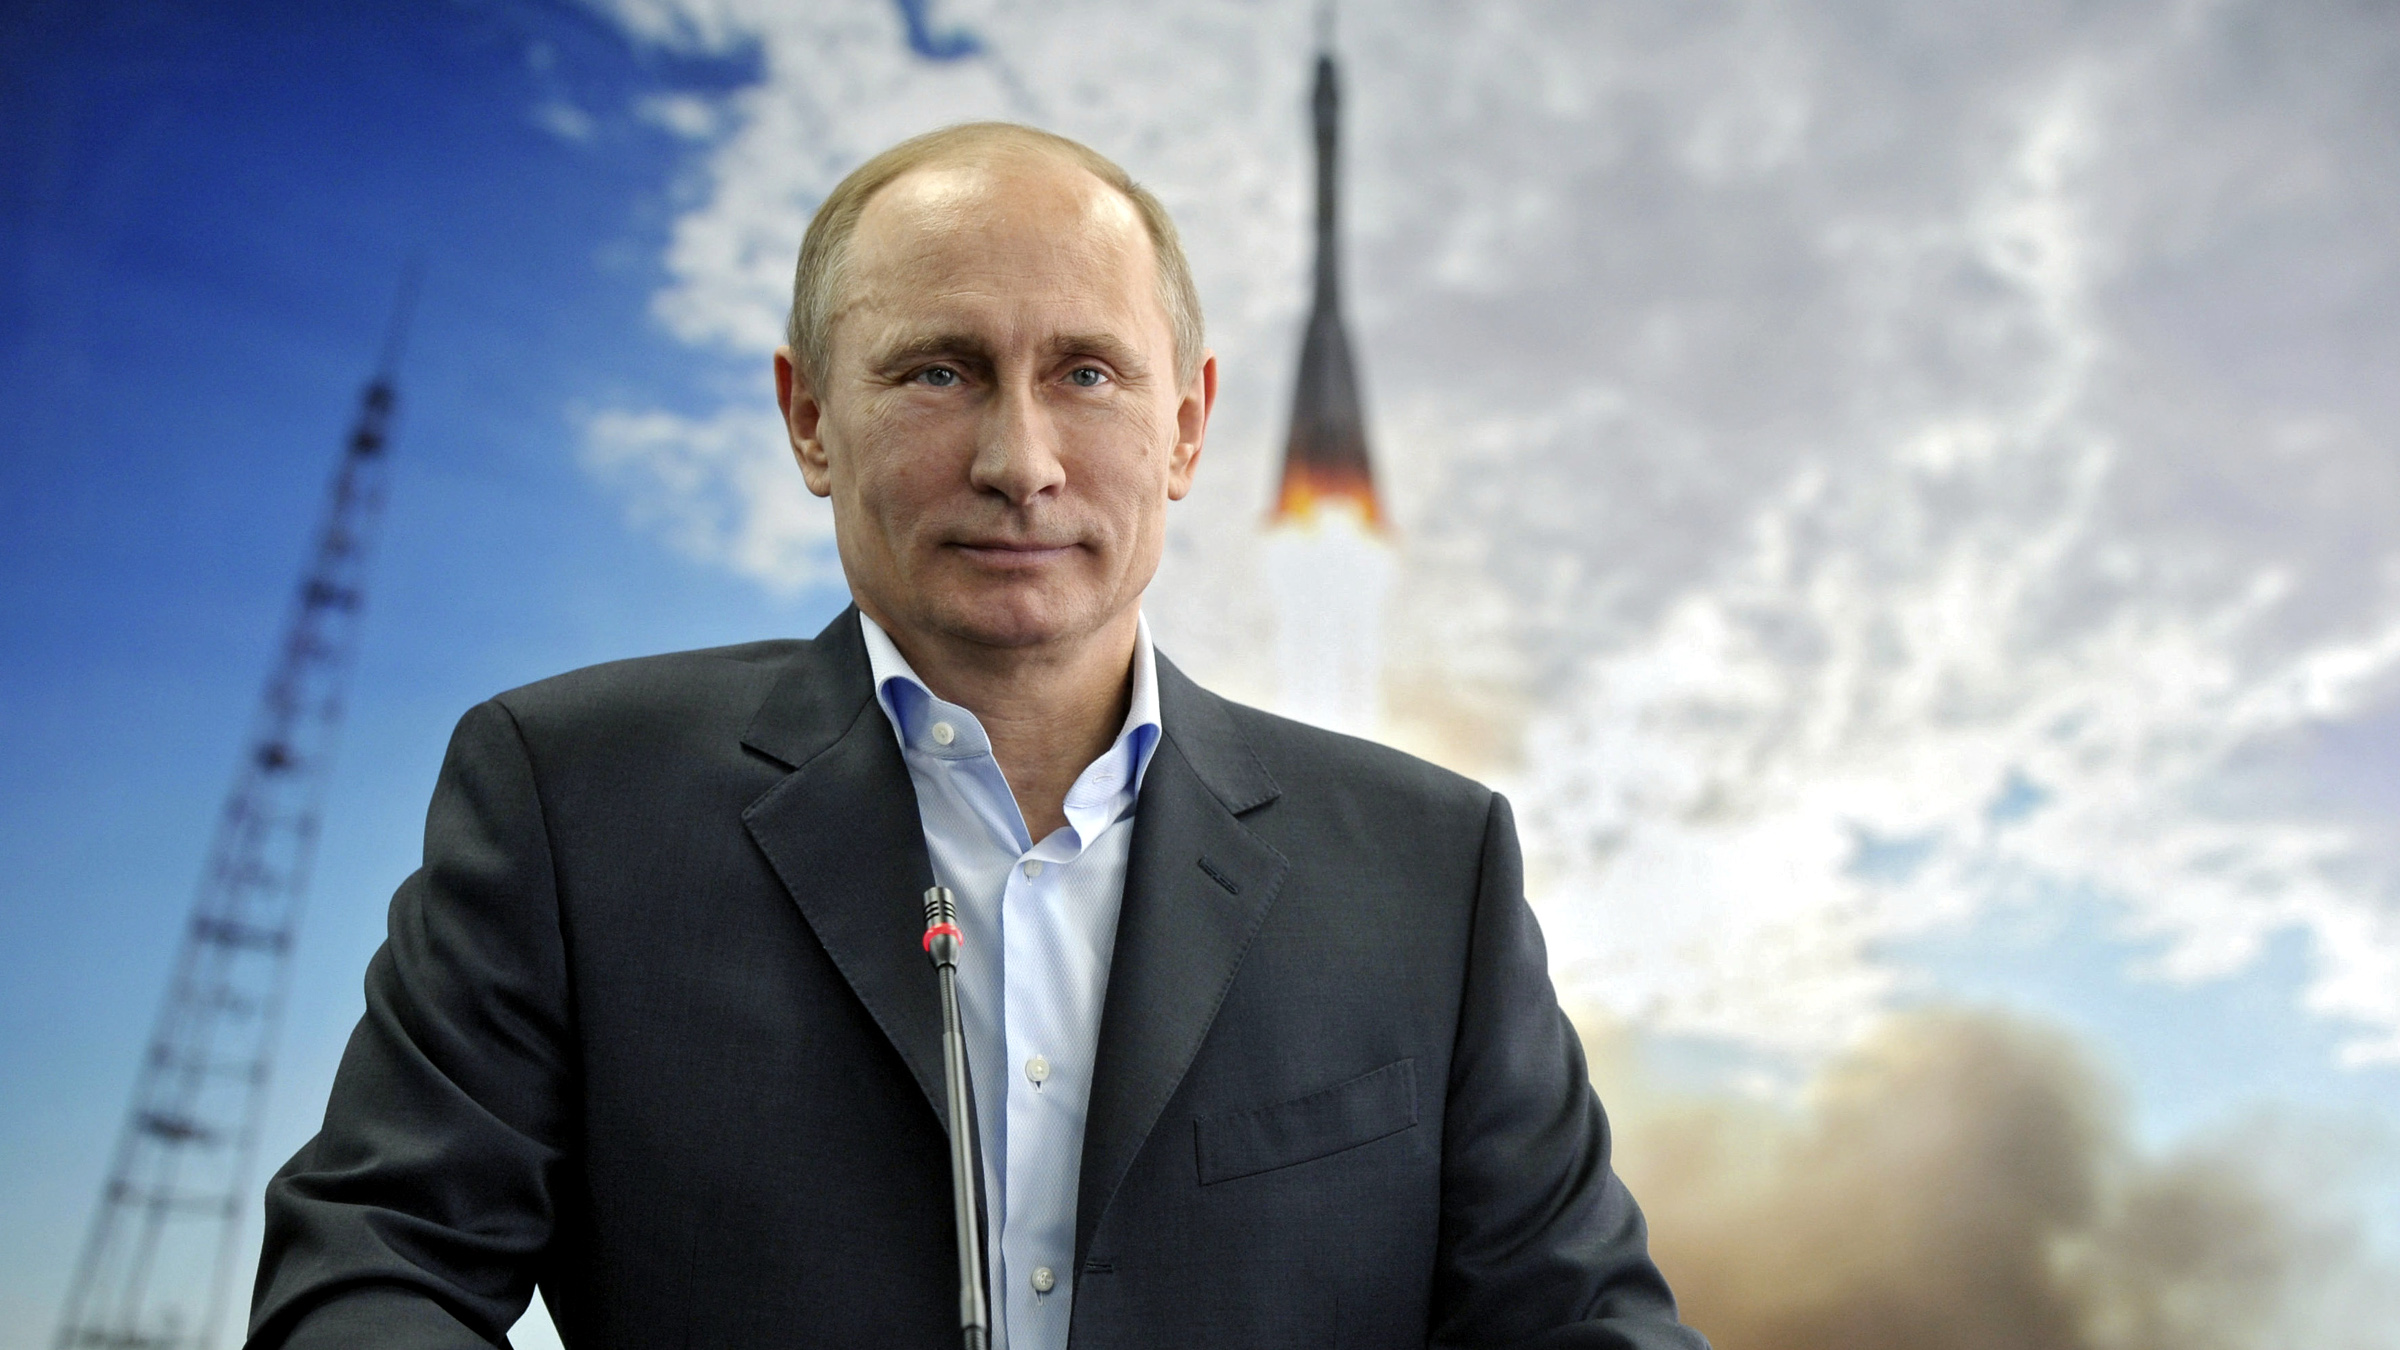 ussian President Vladimir Putin holds a communication session with the crew of the International Space Station (ISS) on Cosmonautics Day during his visit to the Amursk Region, April 12, 2013.